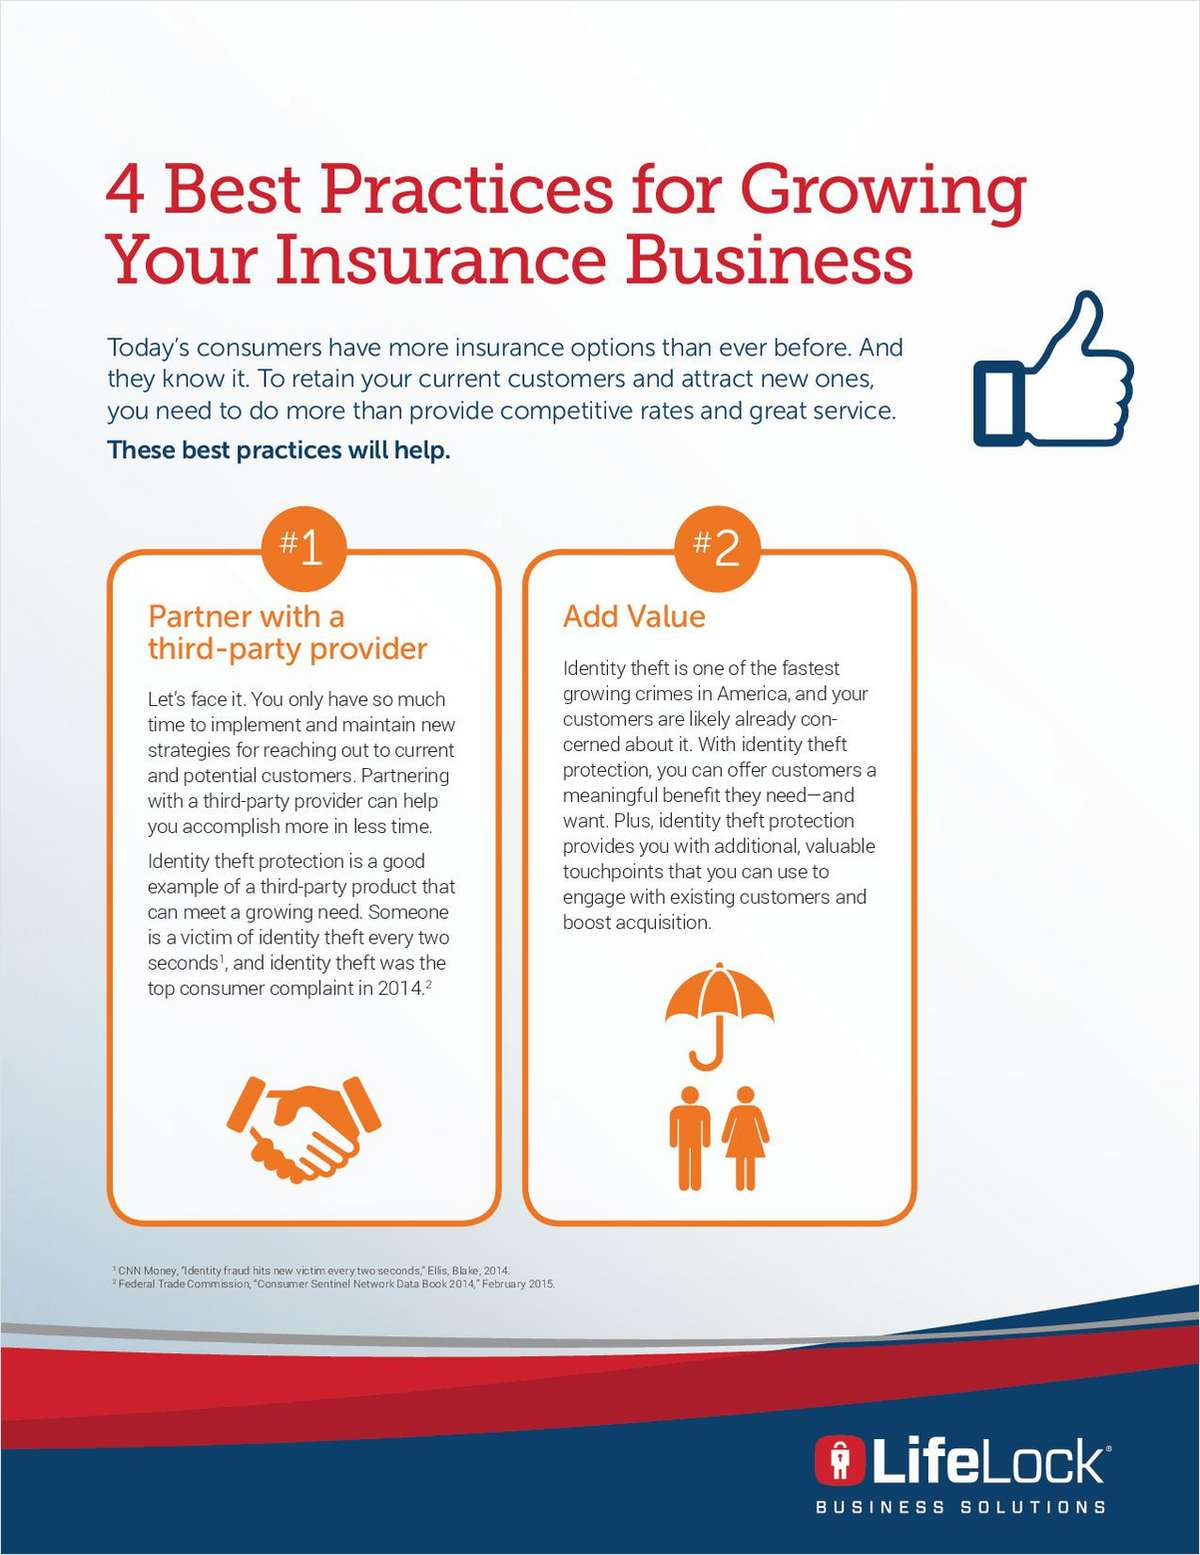 4 Best Practices for Growing Your Insurance Business